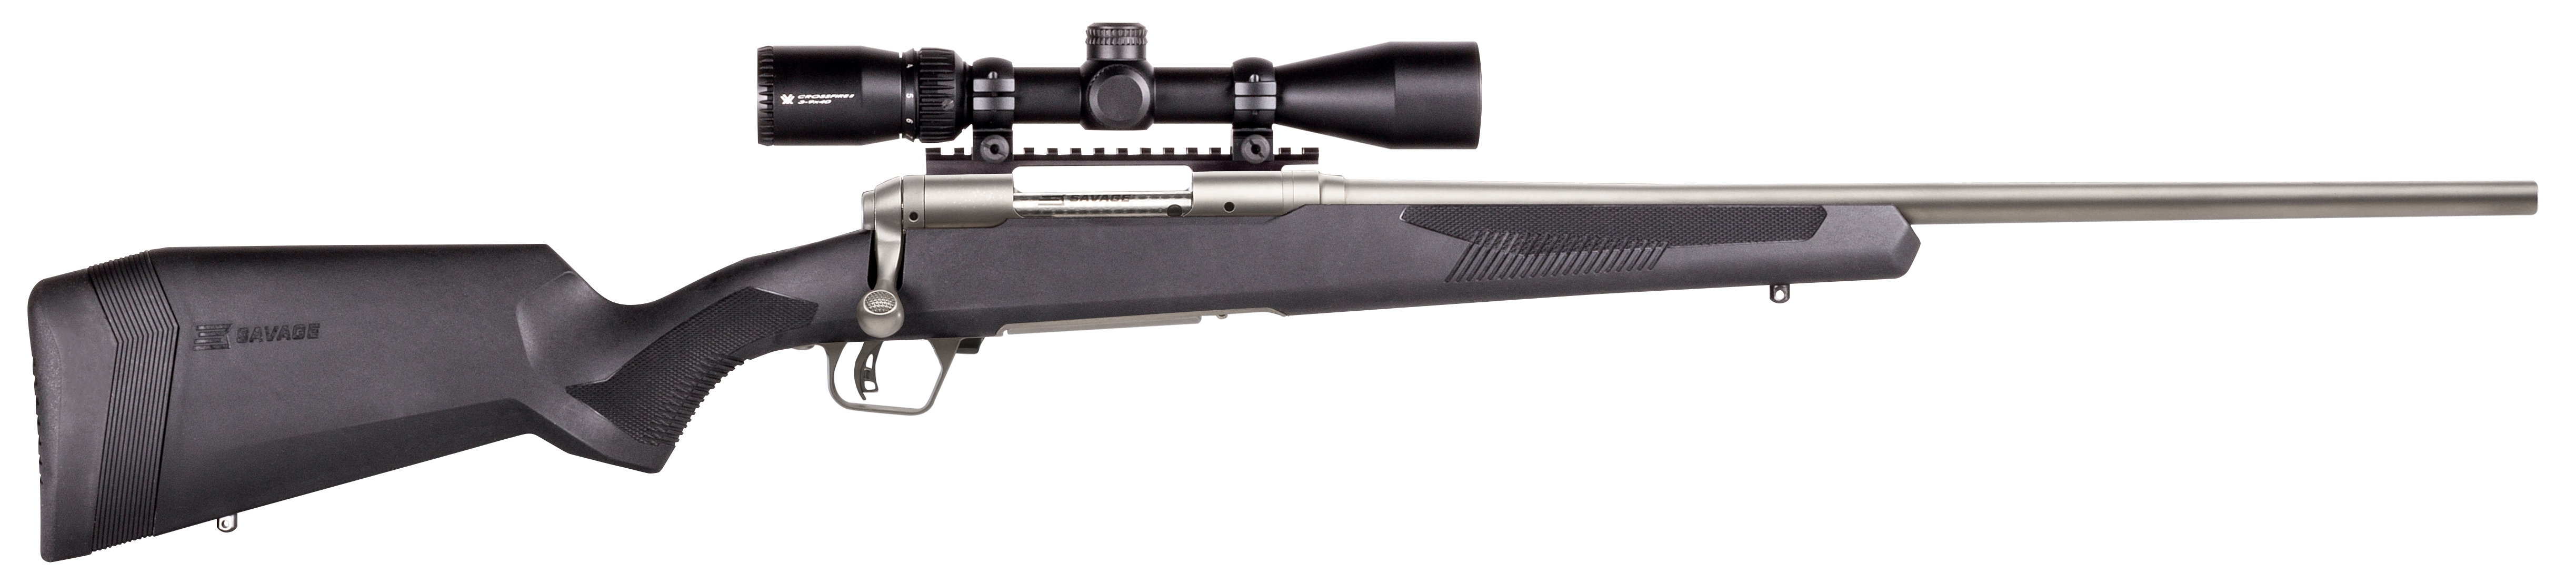 Savage Arms 110 APEX STORM XP 22-250